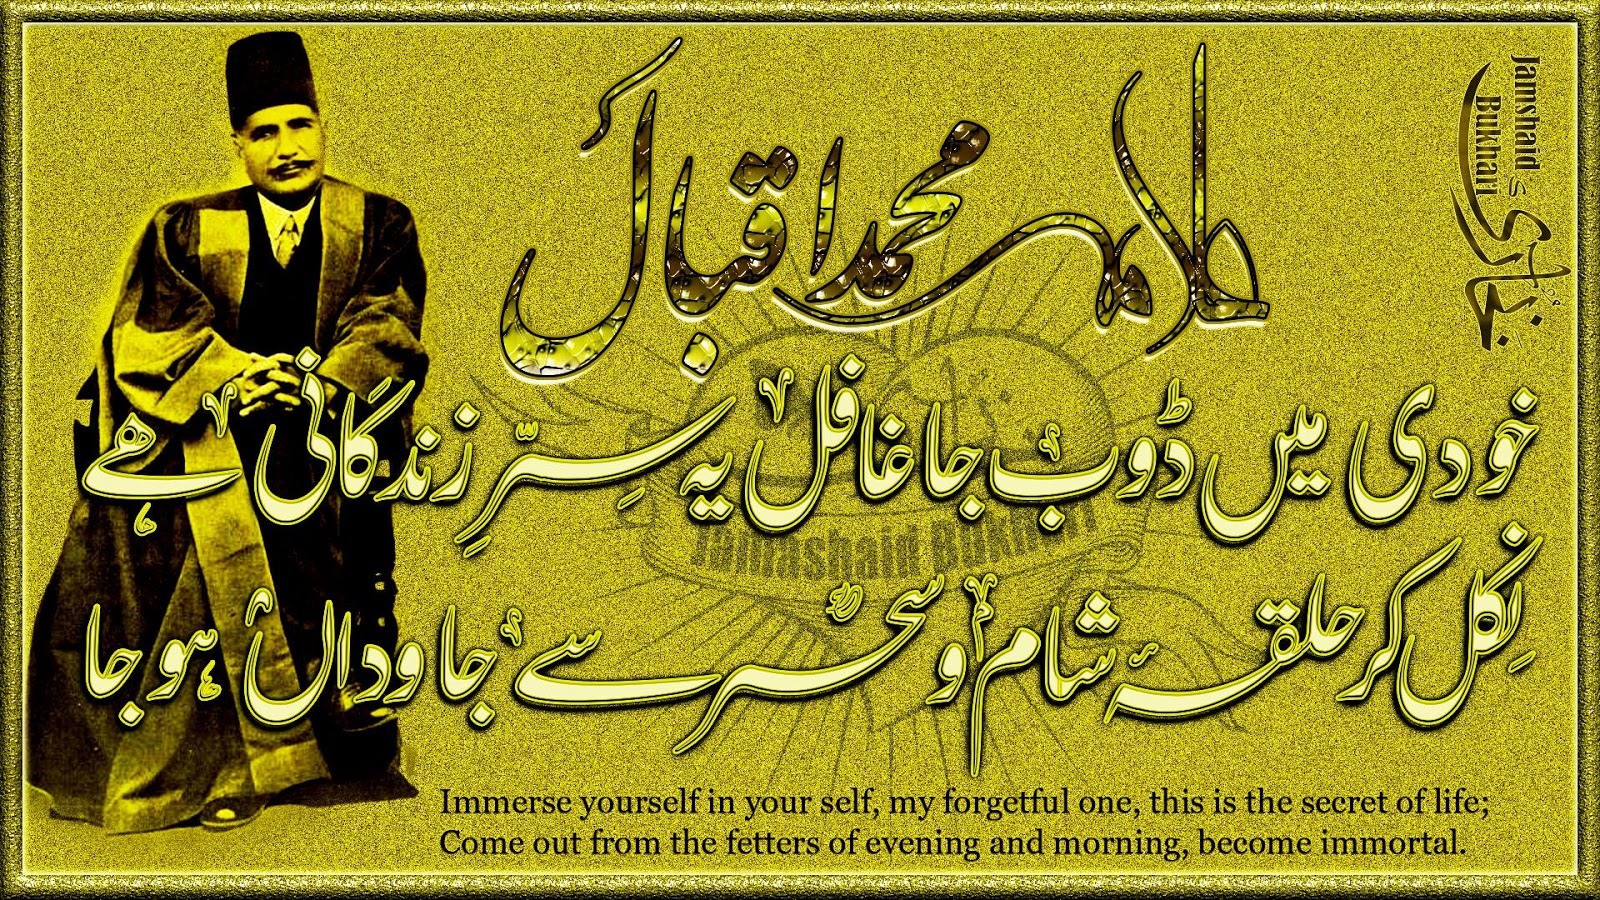 allama iqbal concept of khudi A central aspect of iqbal's philosophy is the concept of the khudi or selfhood contrary to certain strands of sufism that seek the annihilation of the self in the divine as their ultimate goal, iqbal proposes strengthening the khudi.